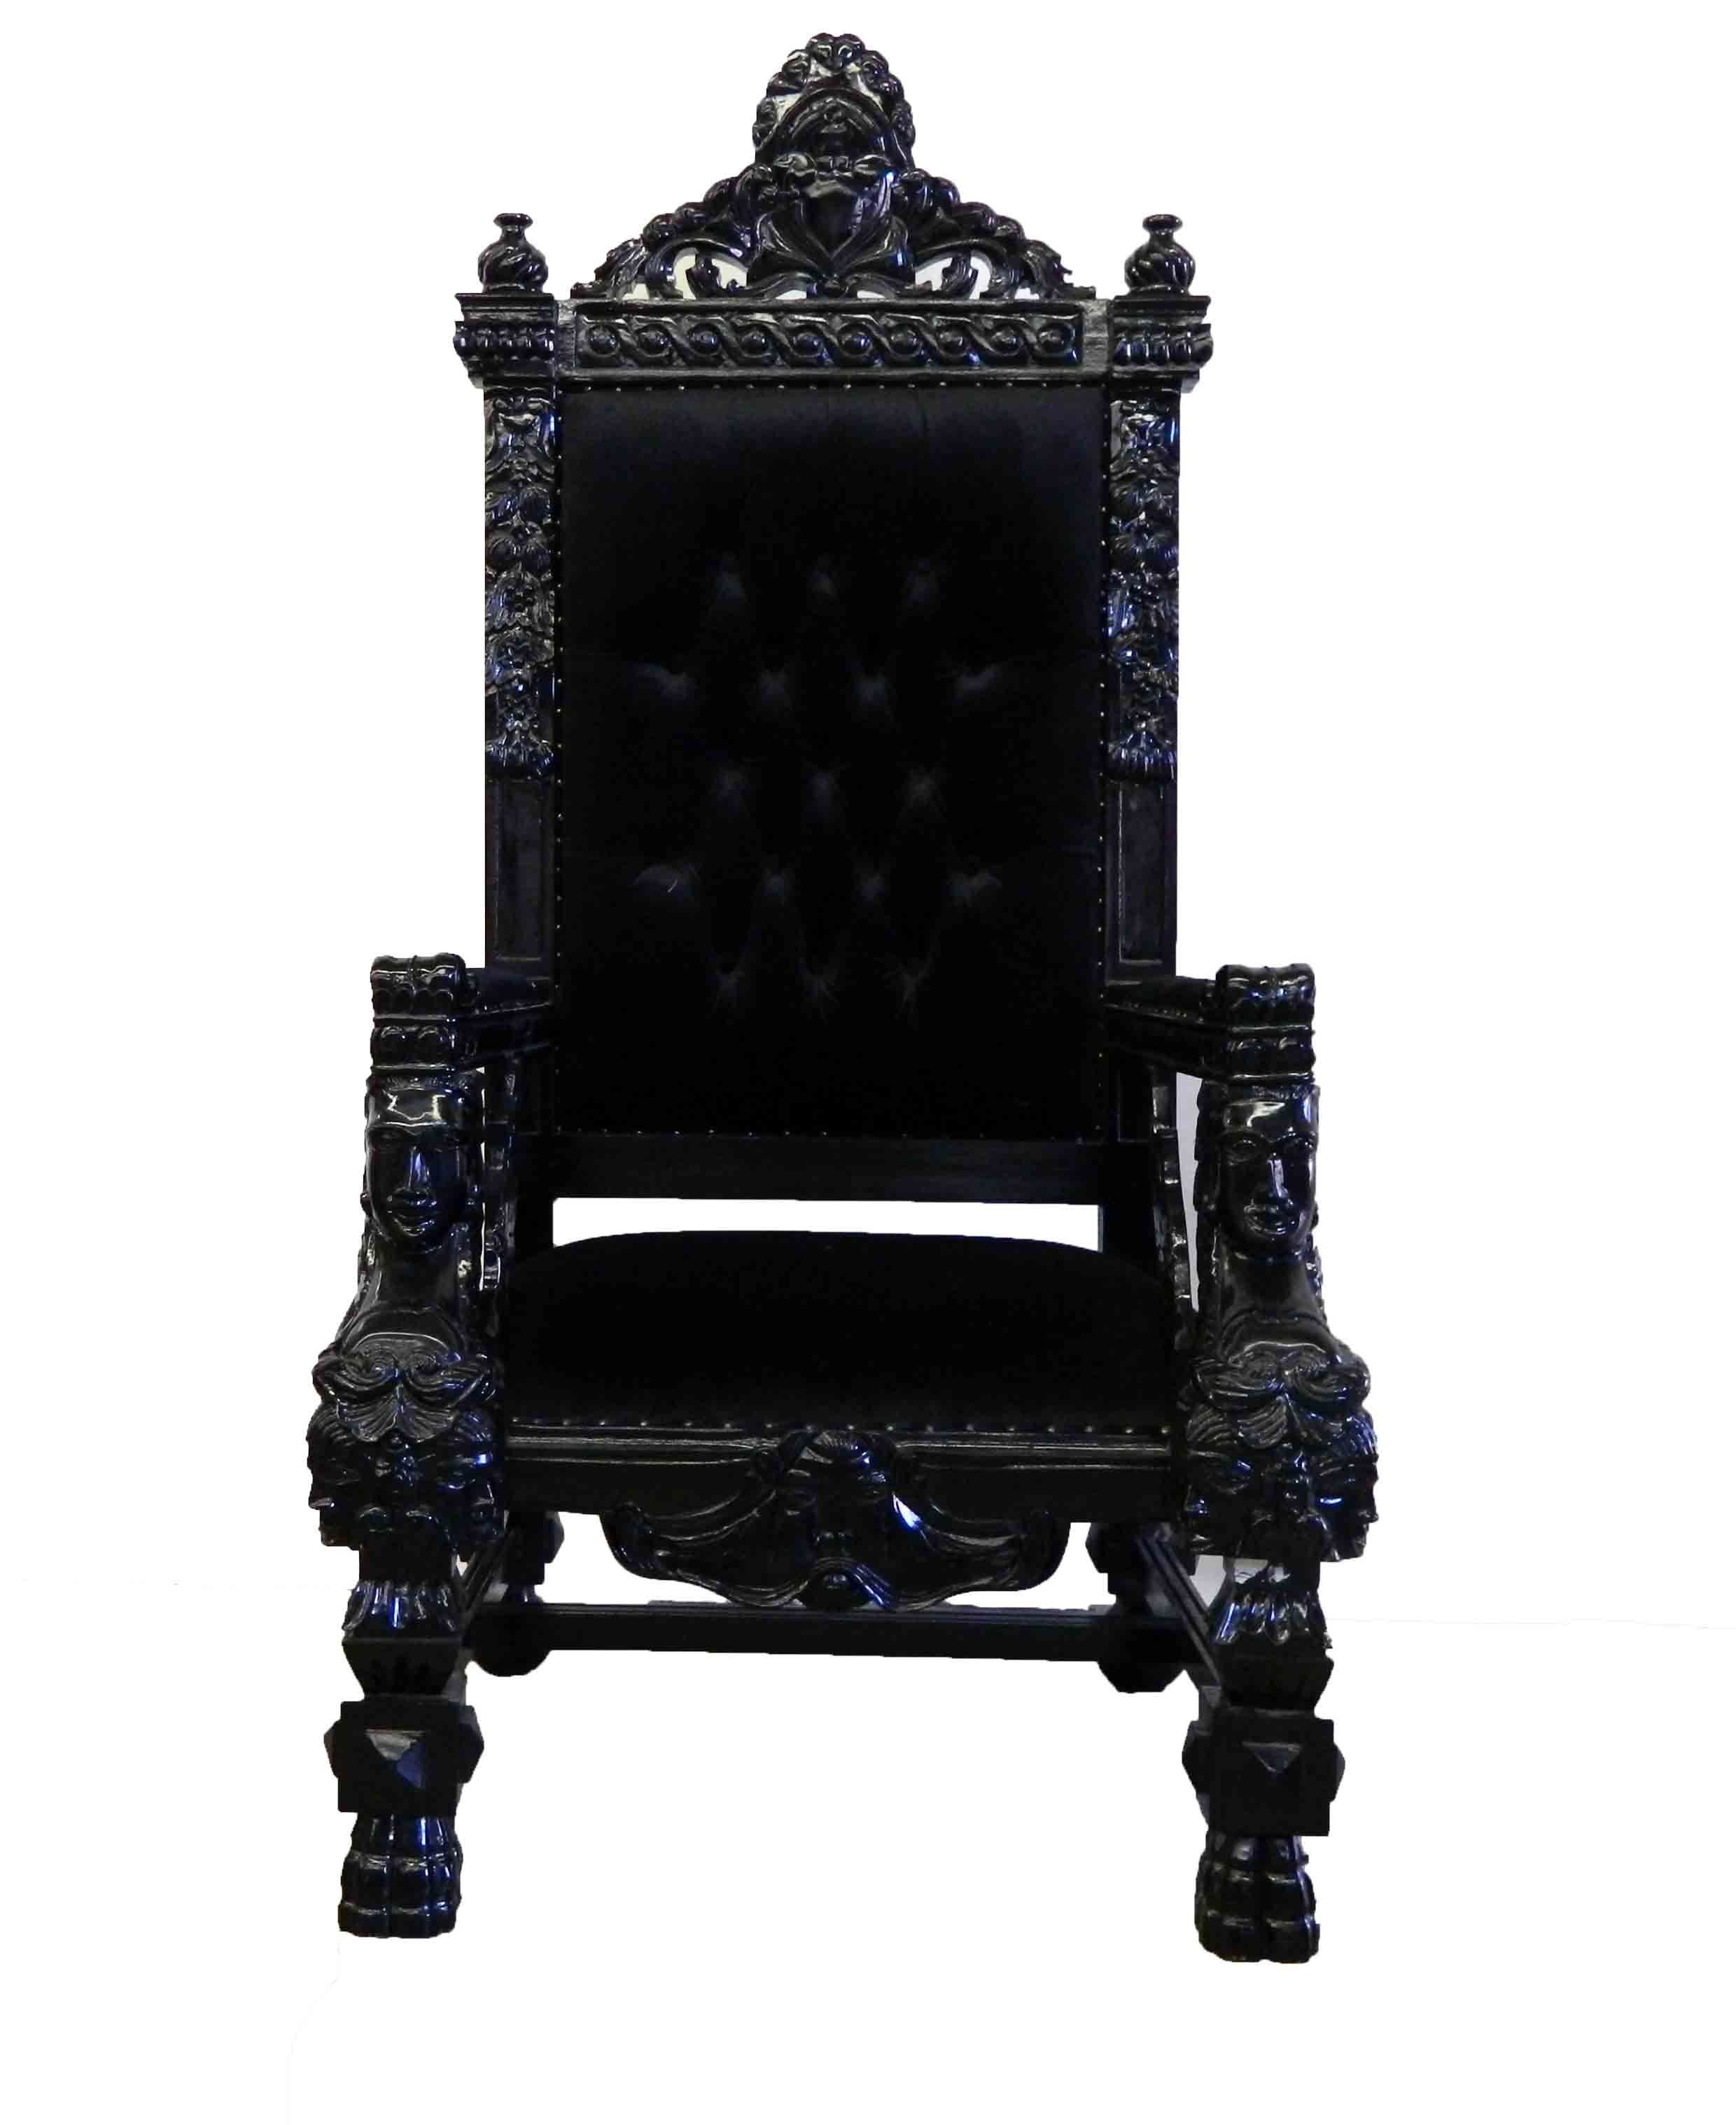 King Chairs King Chair King Ralphs Xtra Large King Chair Elegant